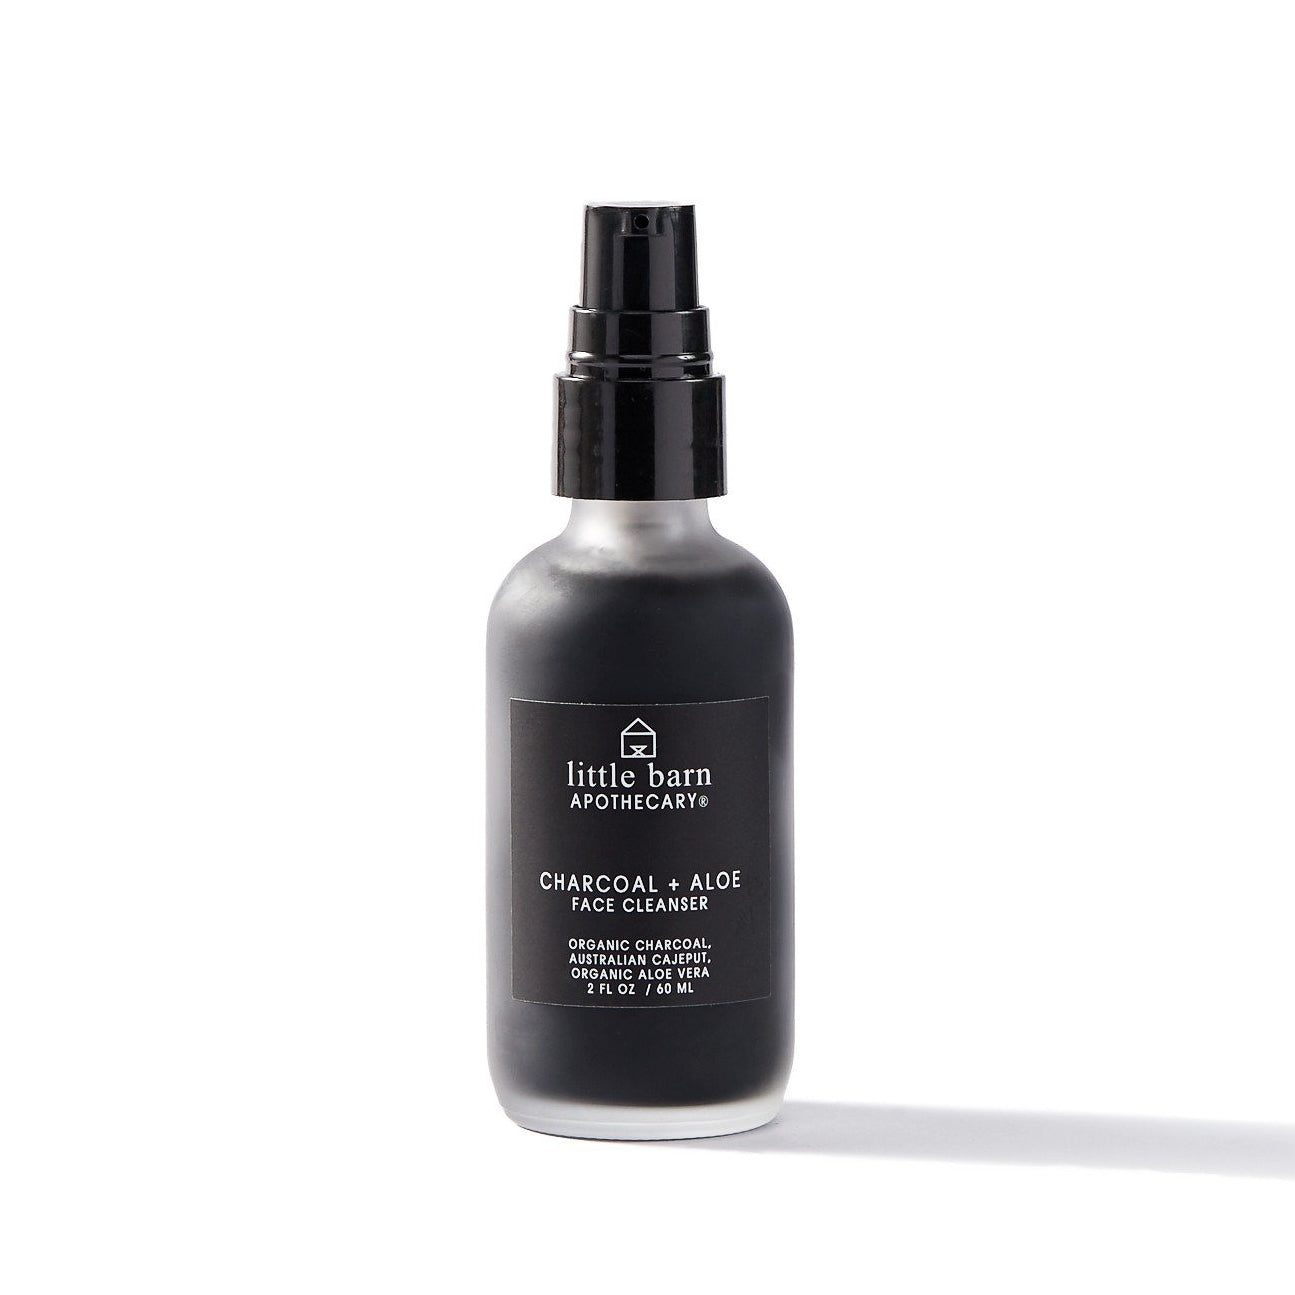 Little Barn Apothecary Charcoal + Aloe Face Cleanser